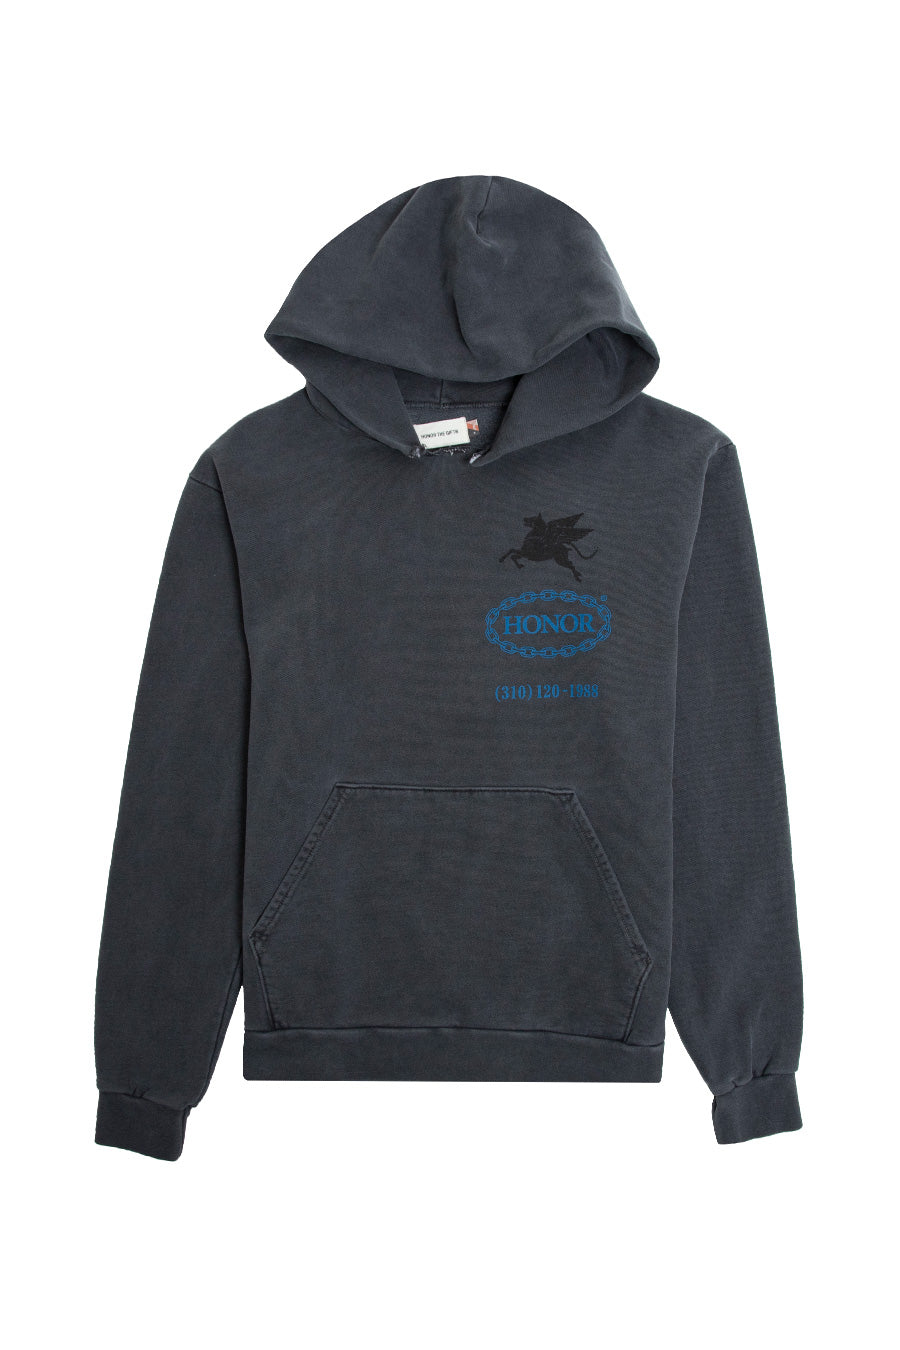 Honor the Gift - Black Hellhound Towing Hoodie | 1032 SPACE